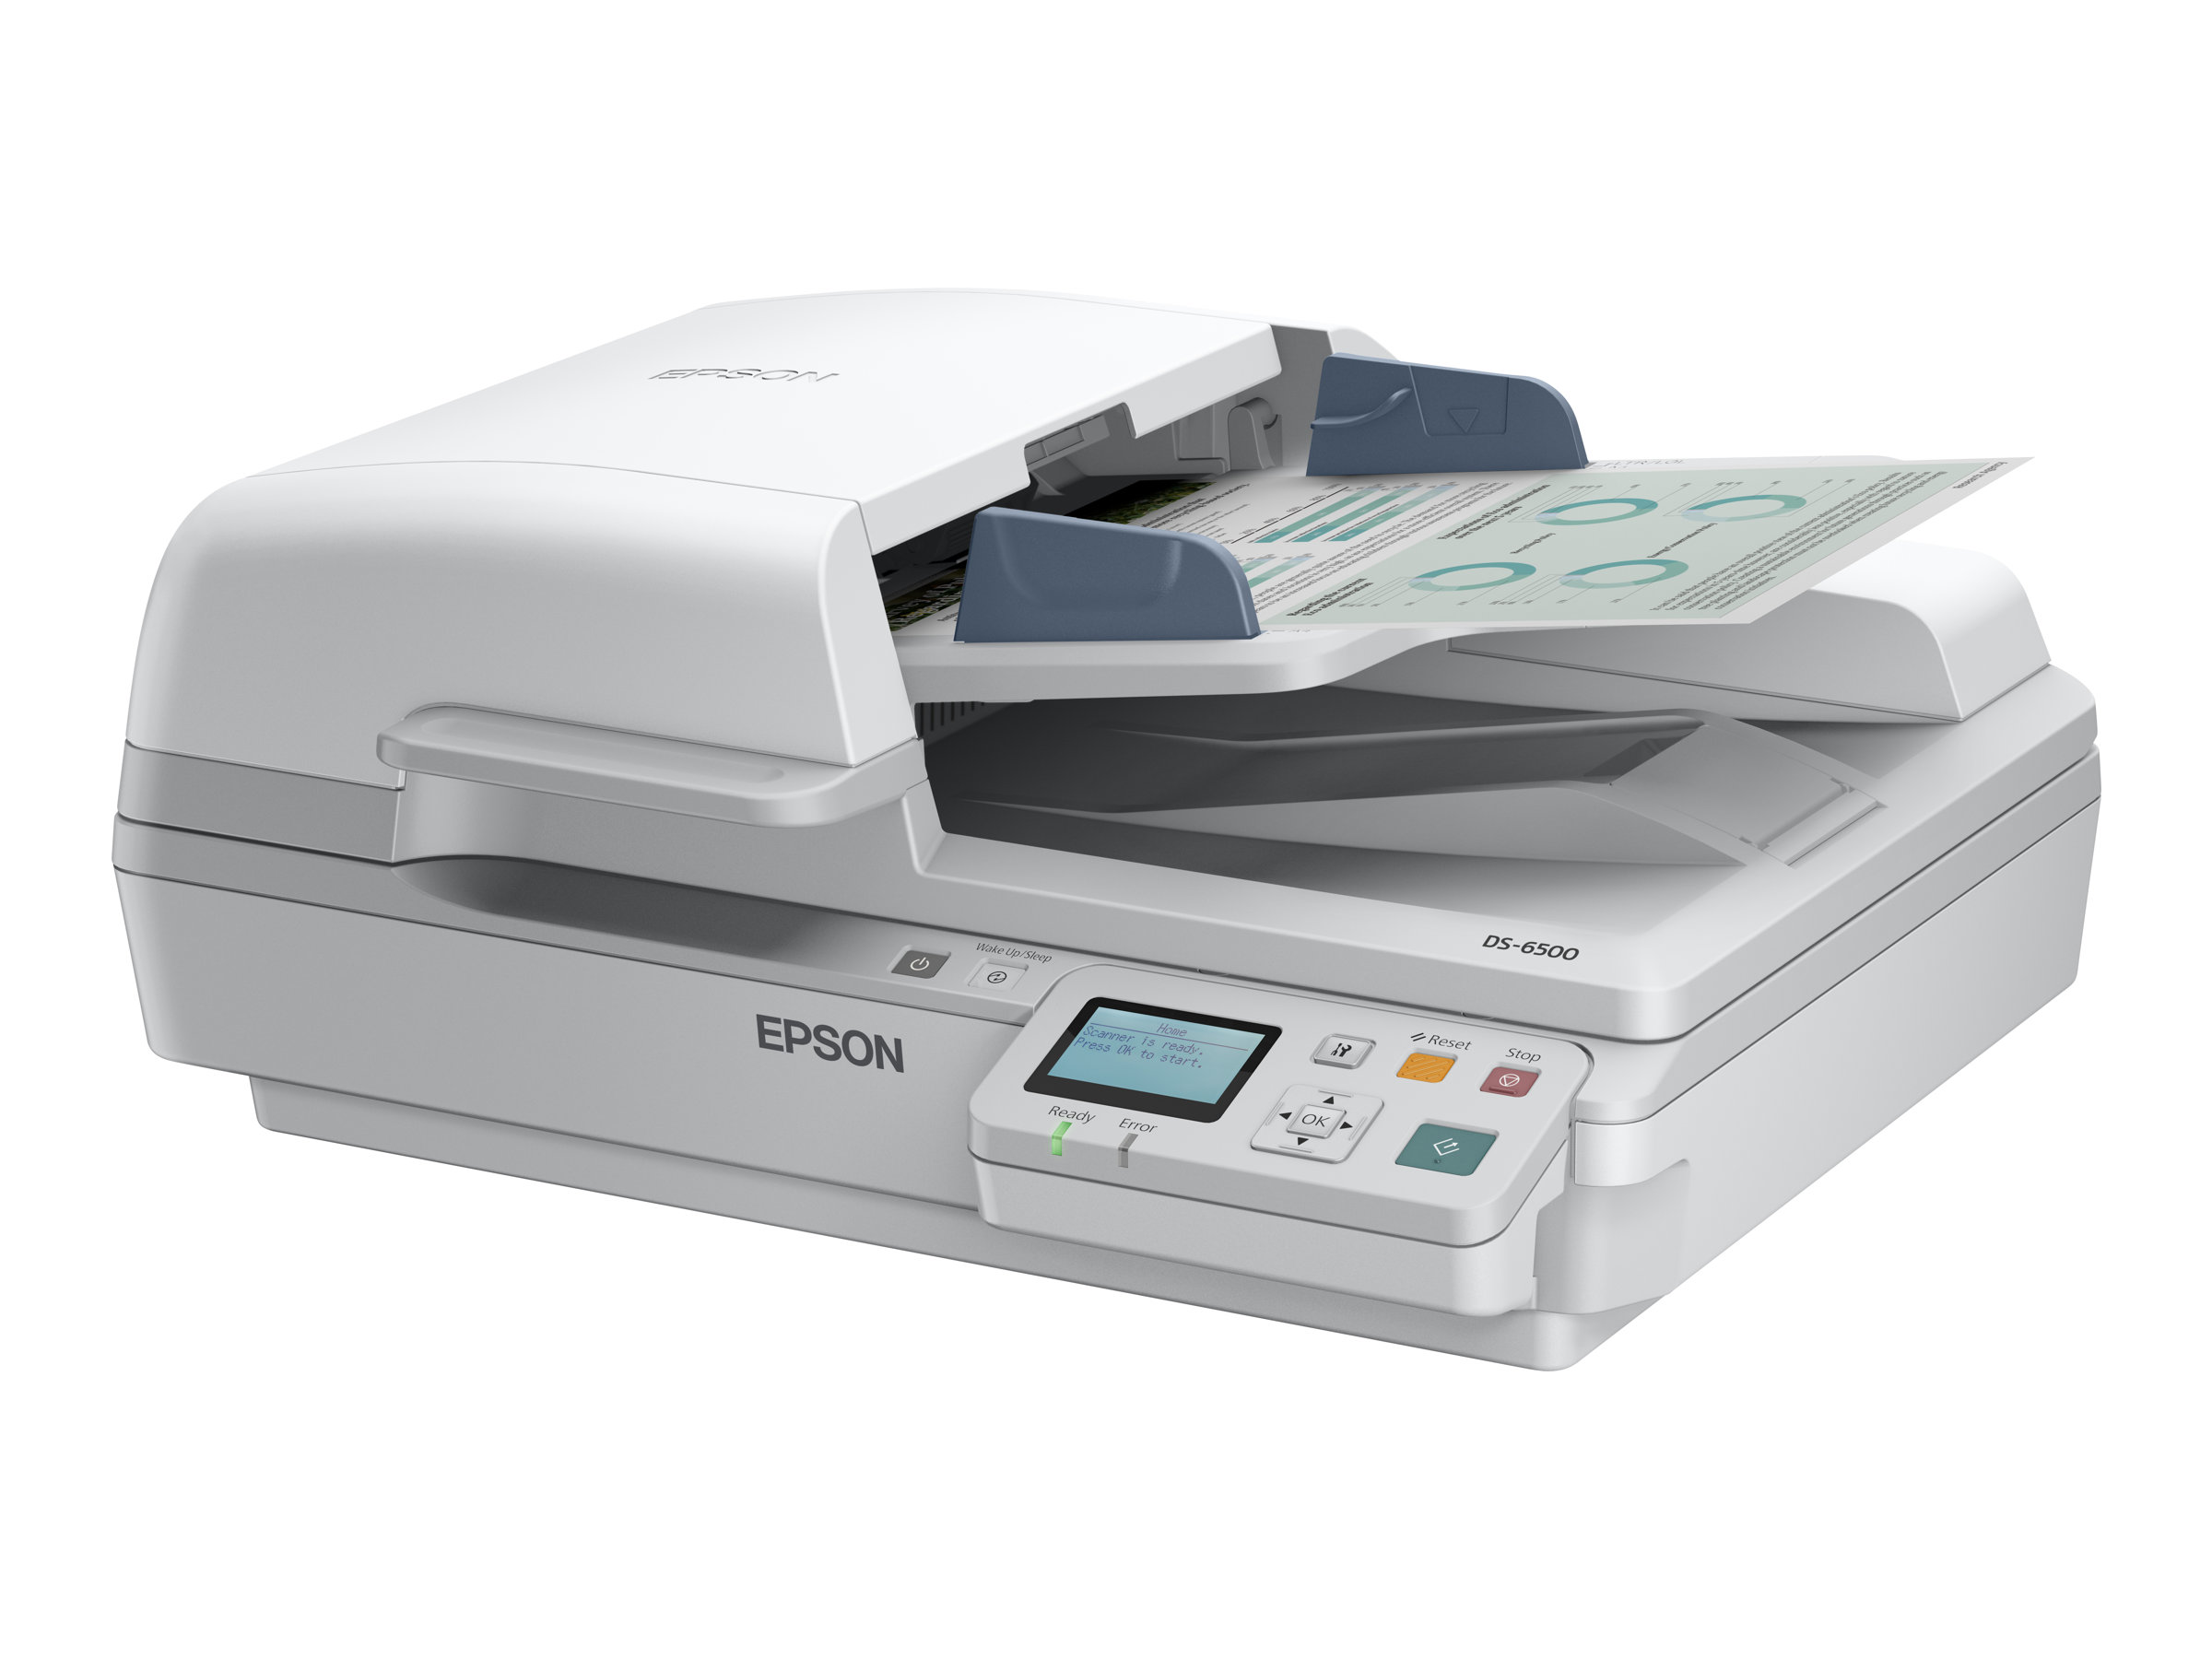 Epson WorkForce DS-7500N - scanner de documents A4 -  1200 ppp x 1200 ppp - 40ppm